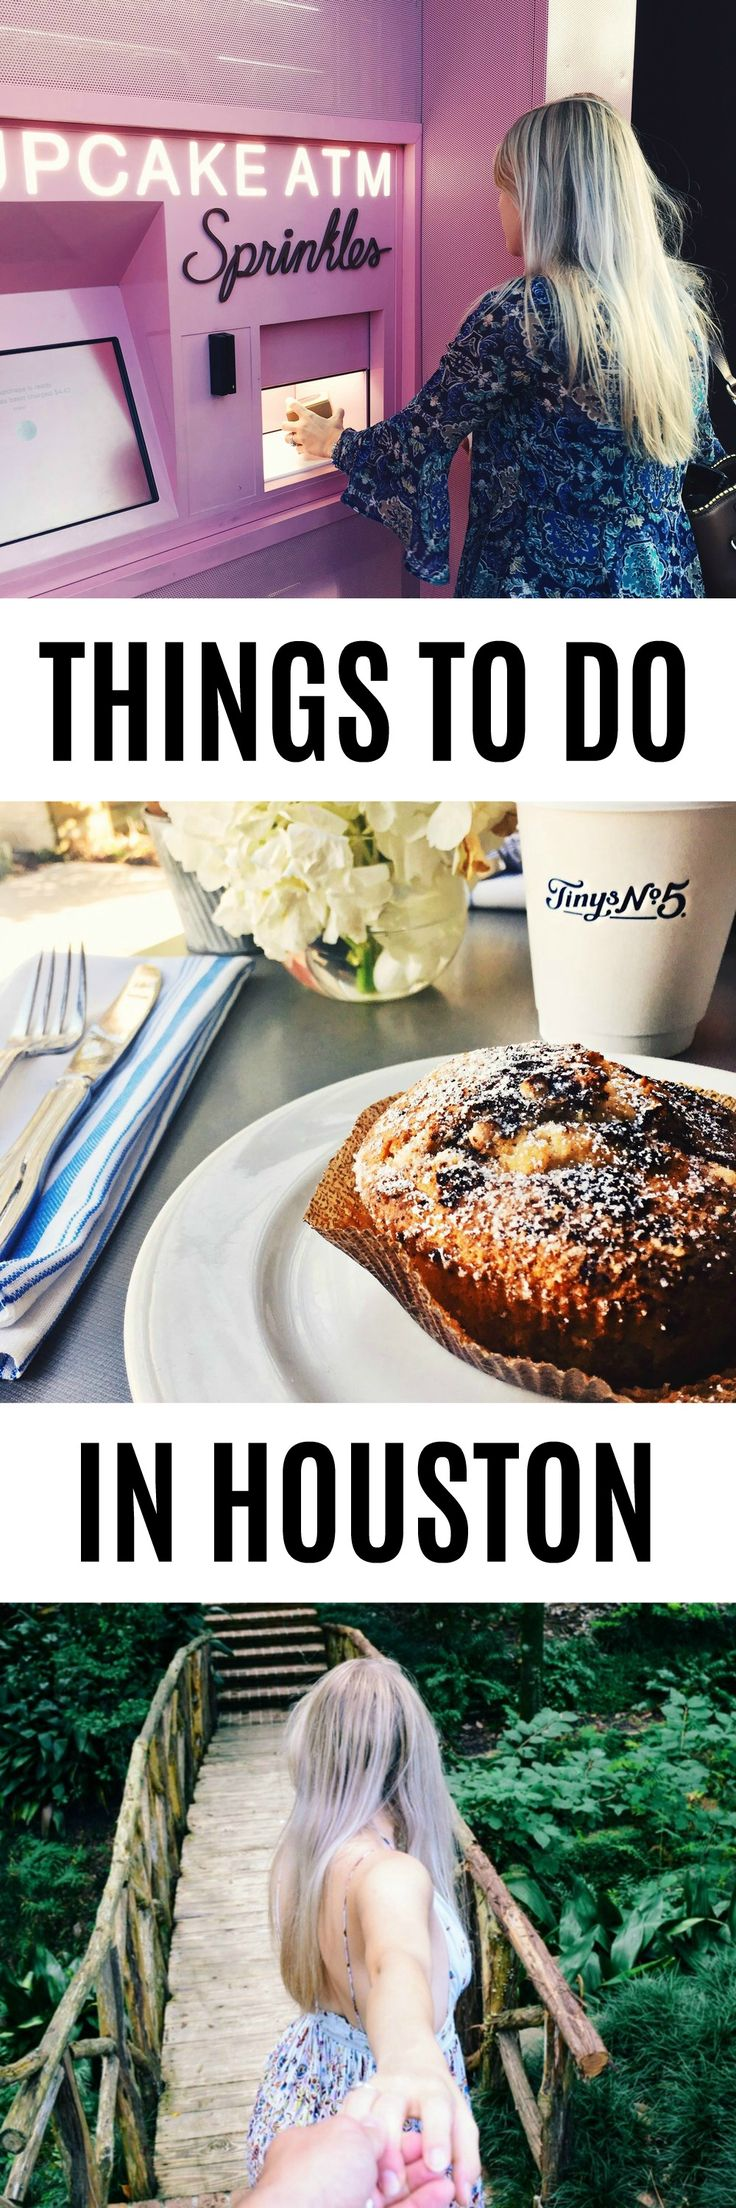 Houston dating things to do